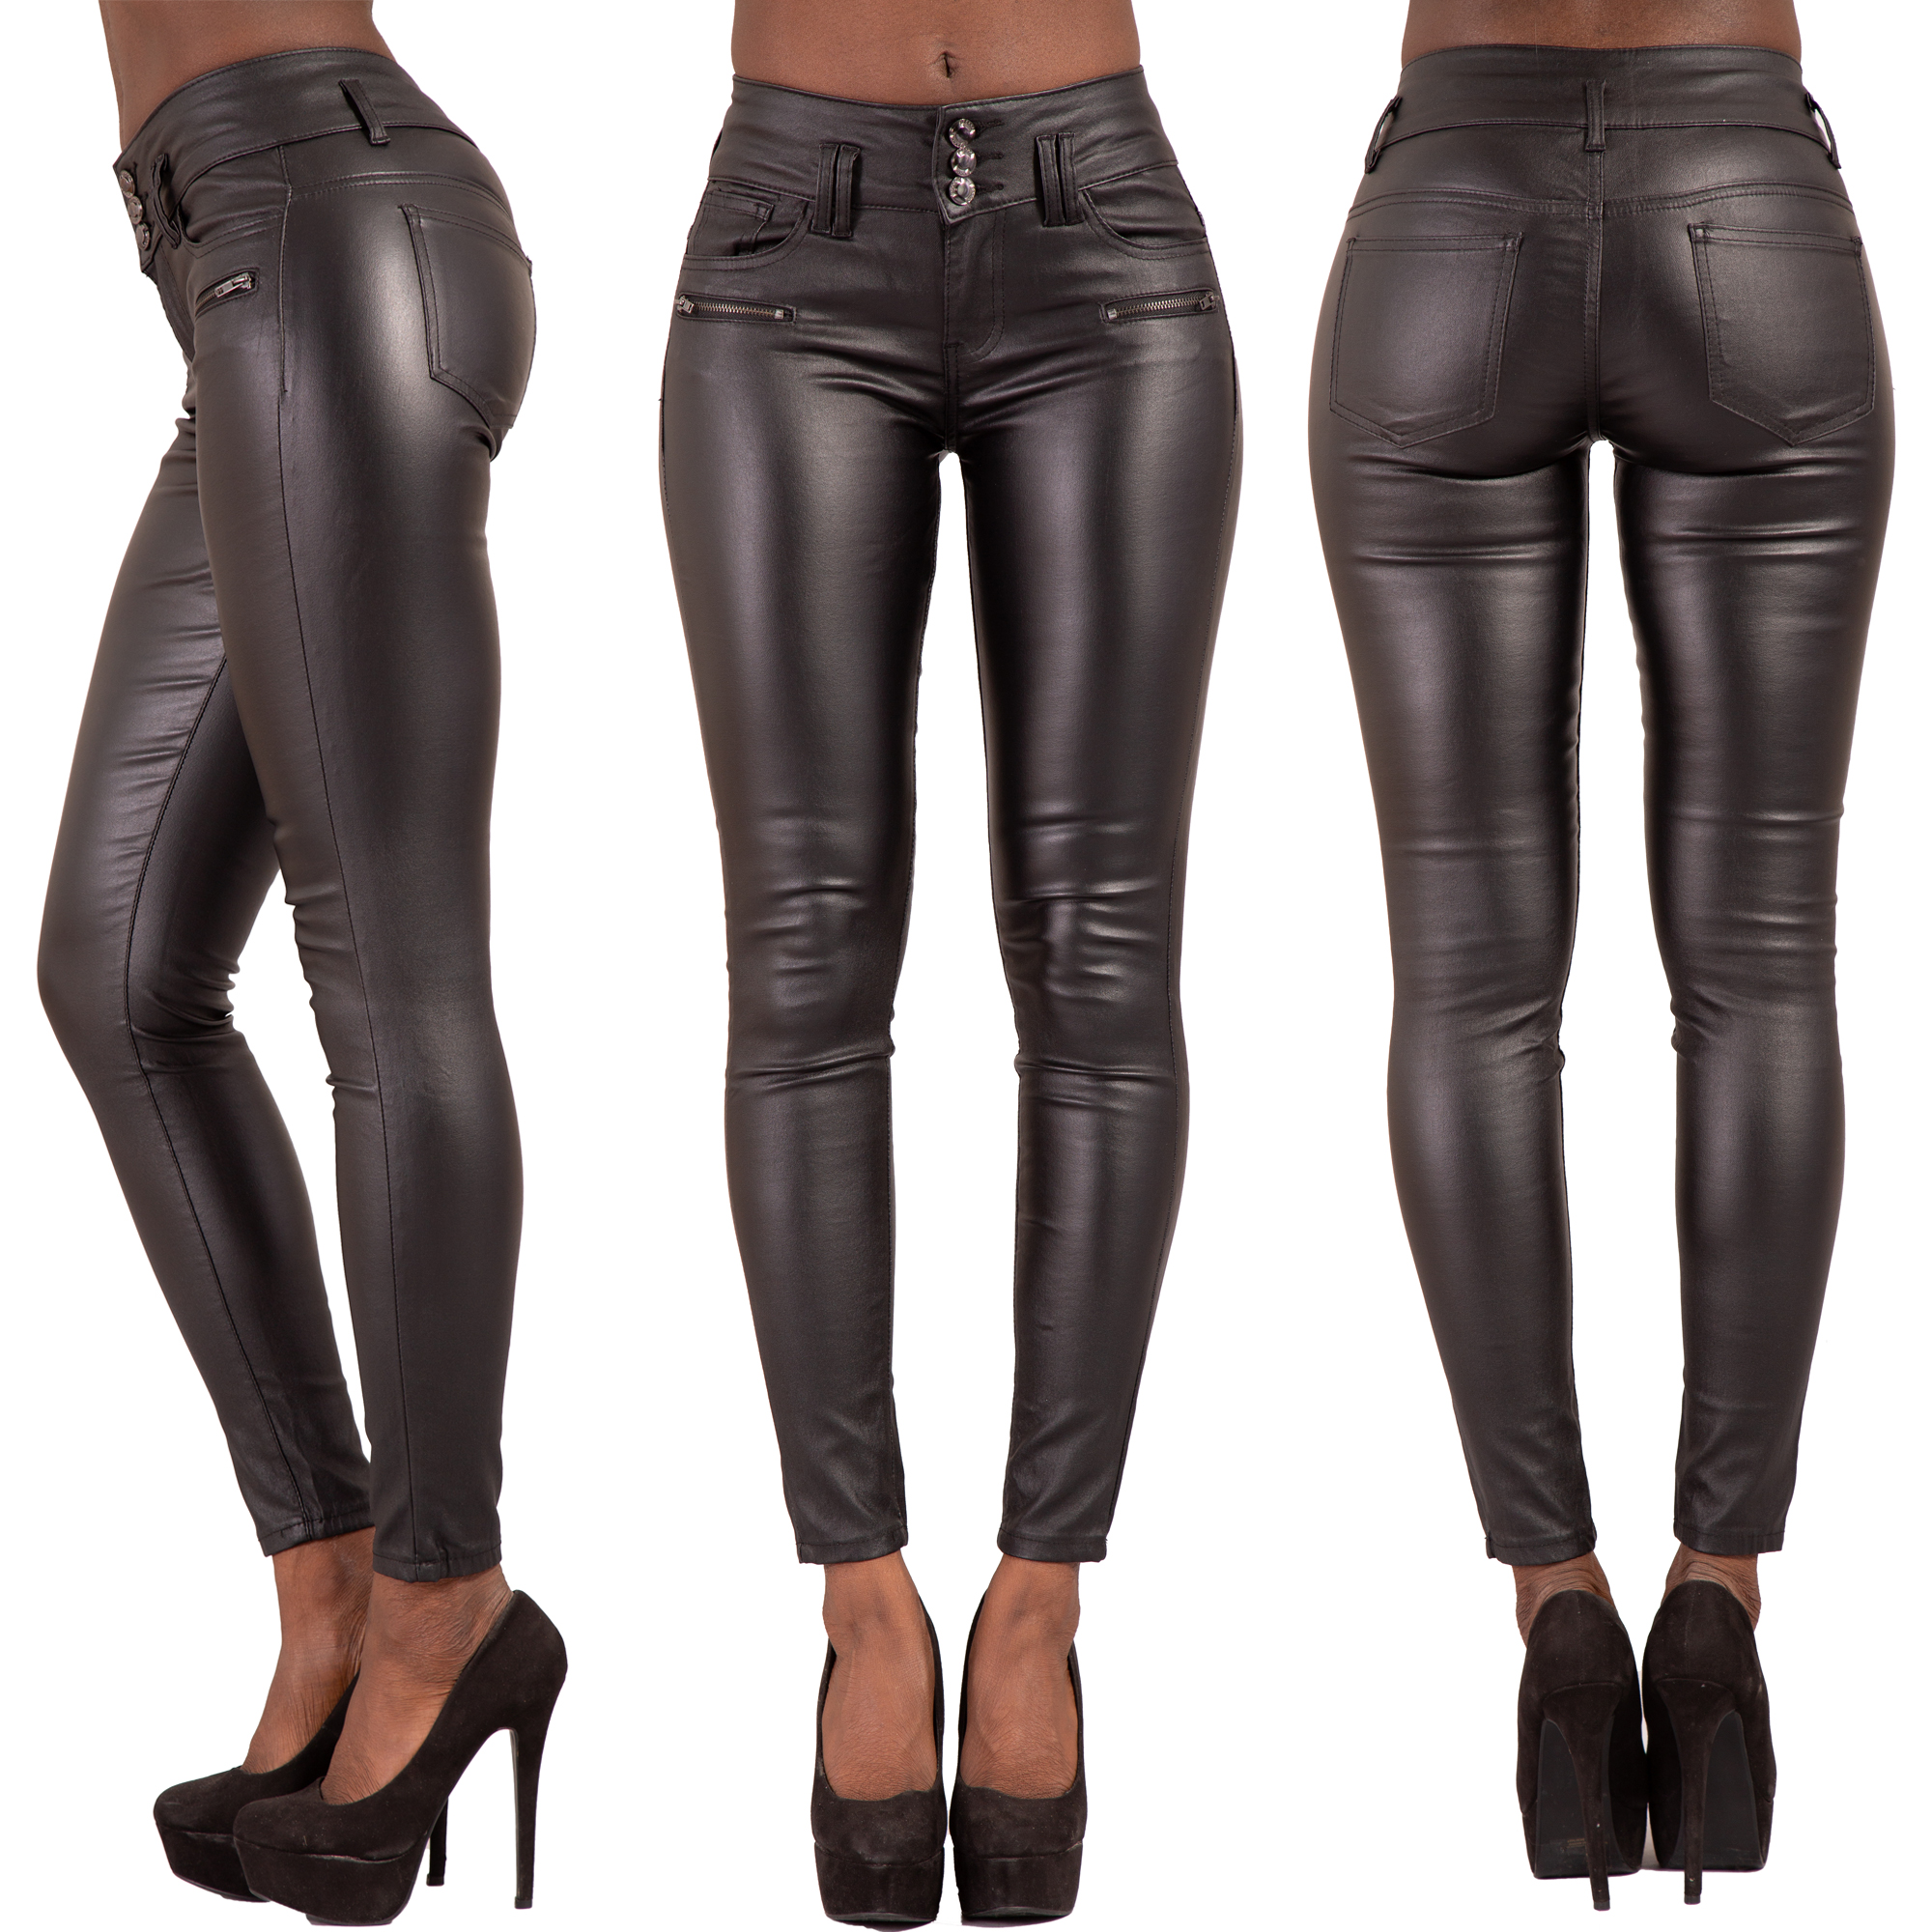 get new limpid in sight more photos Details about WOMEN HIGH WAIST BLACK LEATHER LOOK JEANS SLIM FIT TROUSERS  SIZE 6 8 10 12 14